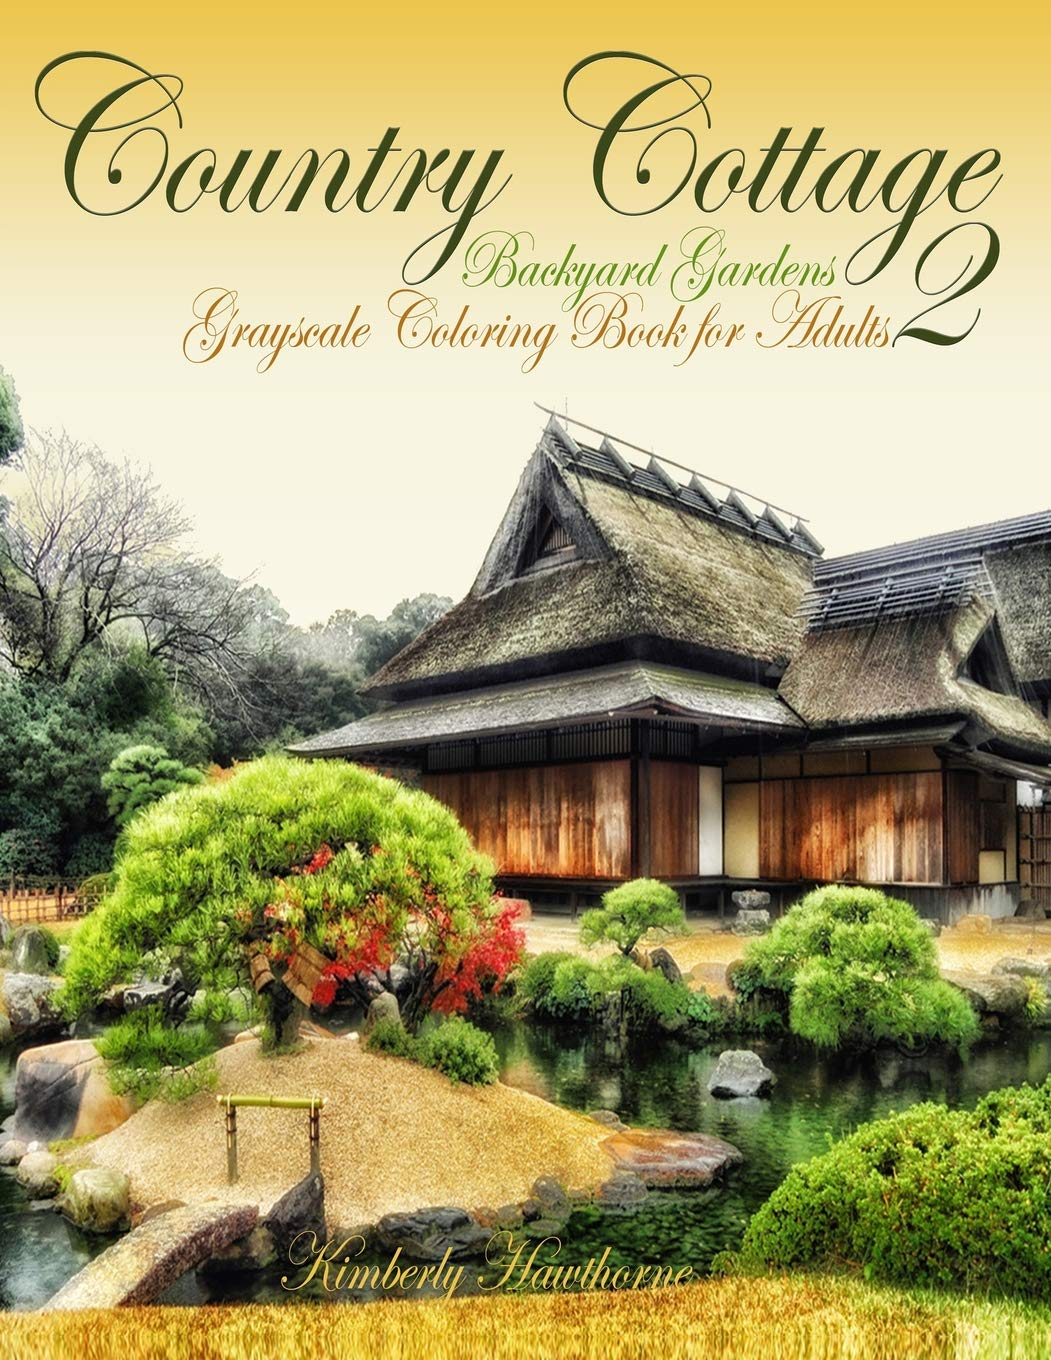 amazon country cottage backyard gardens 2 grayscale coloring book